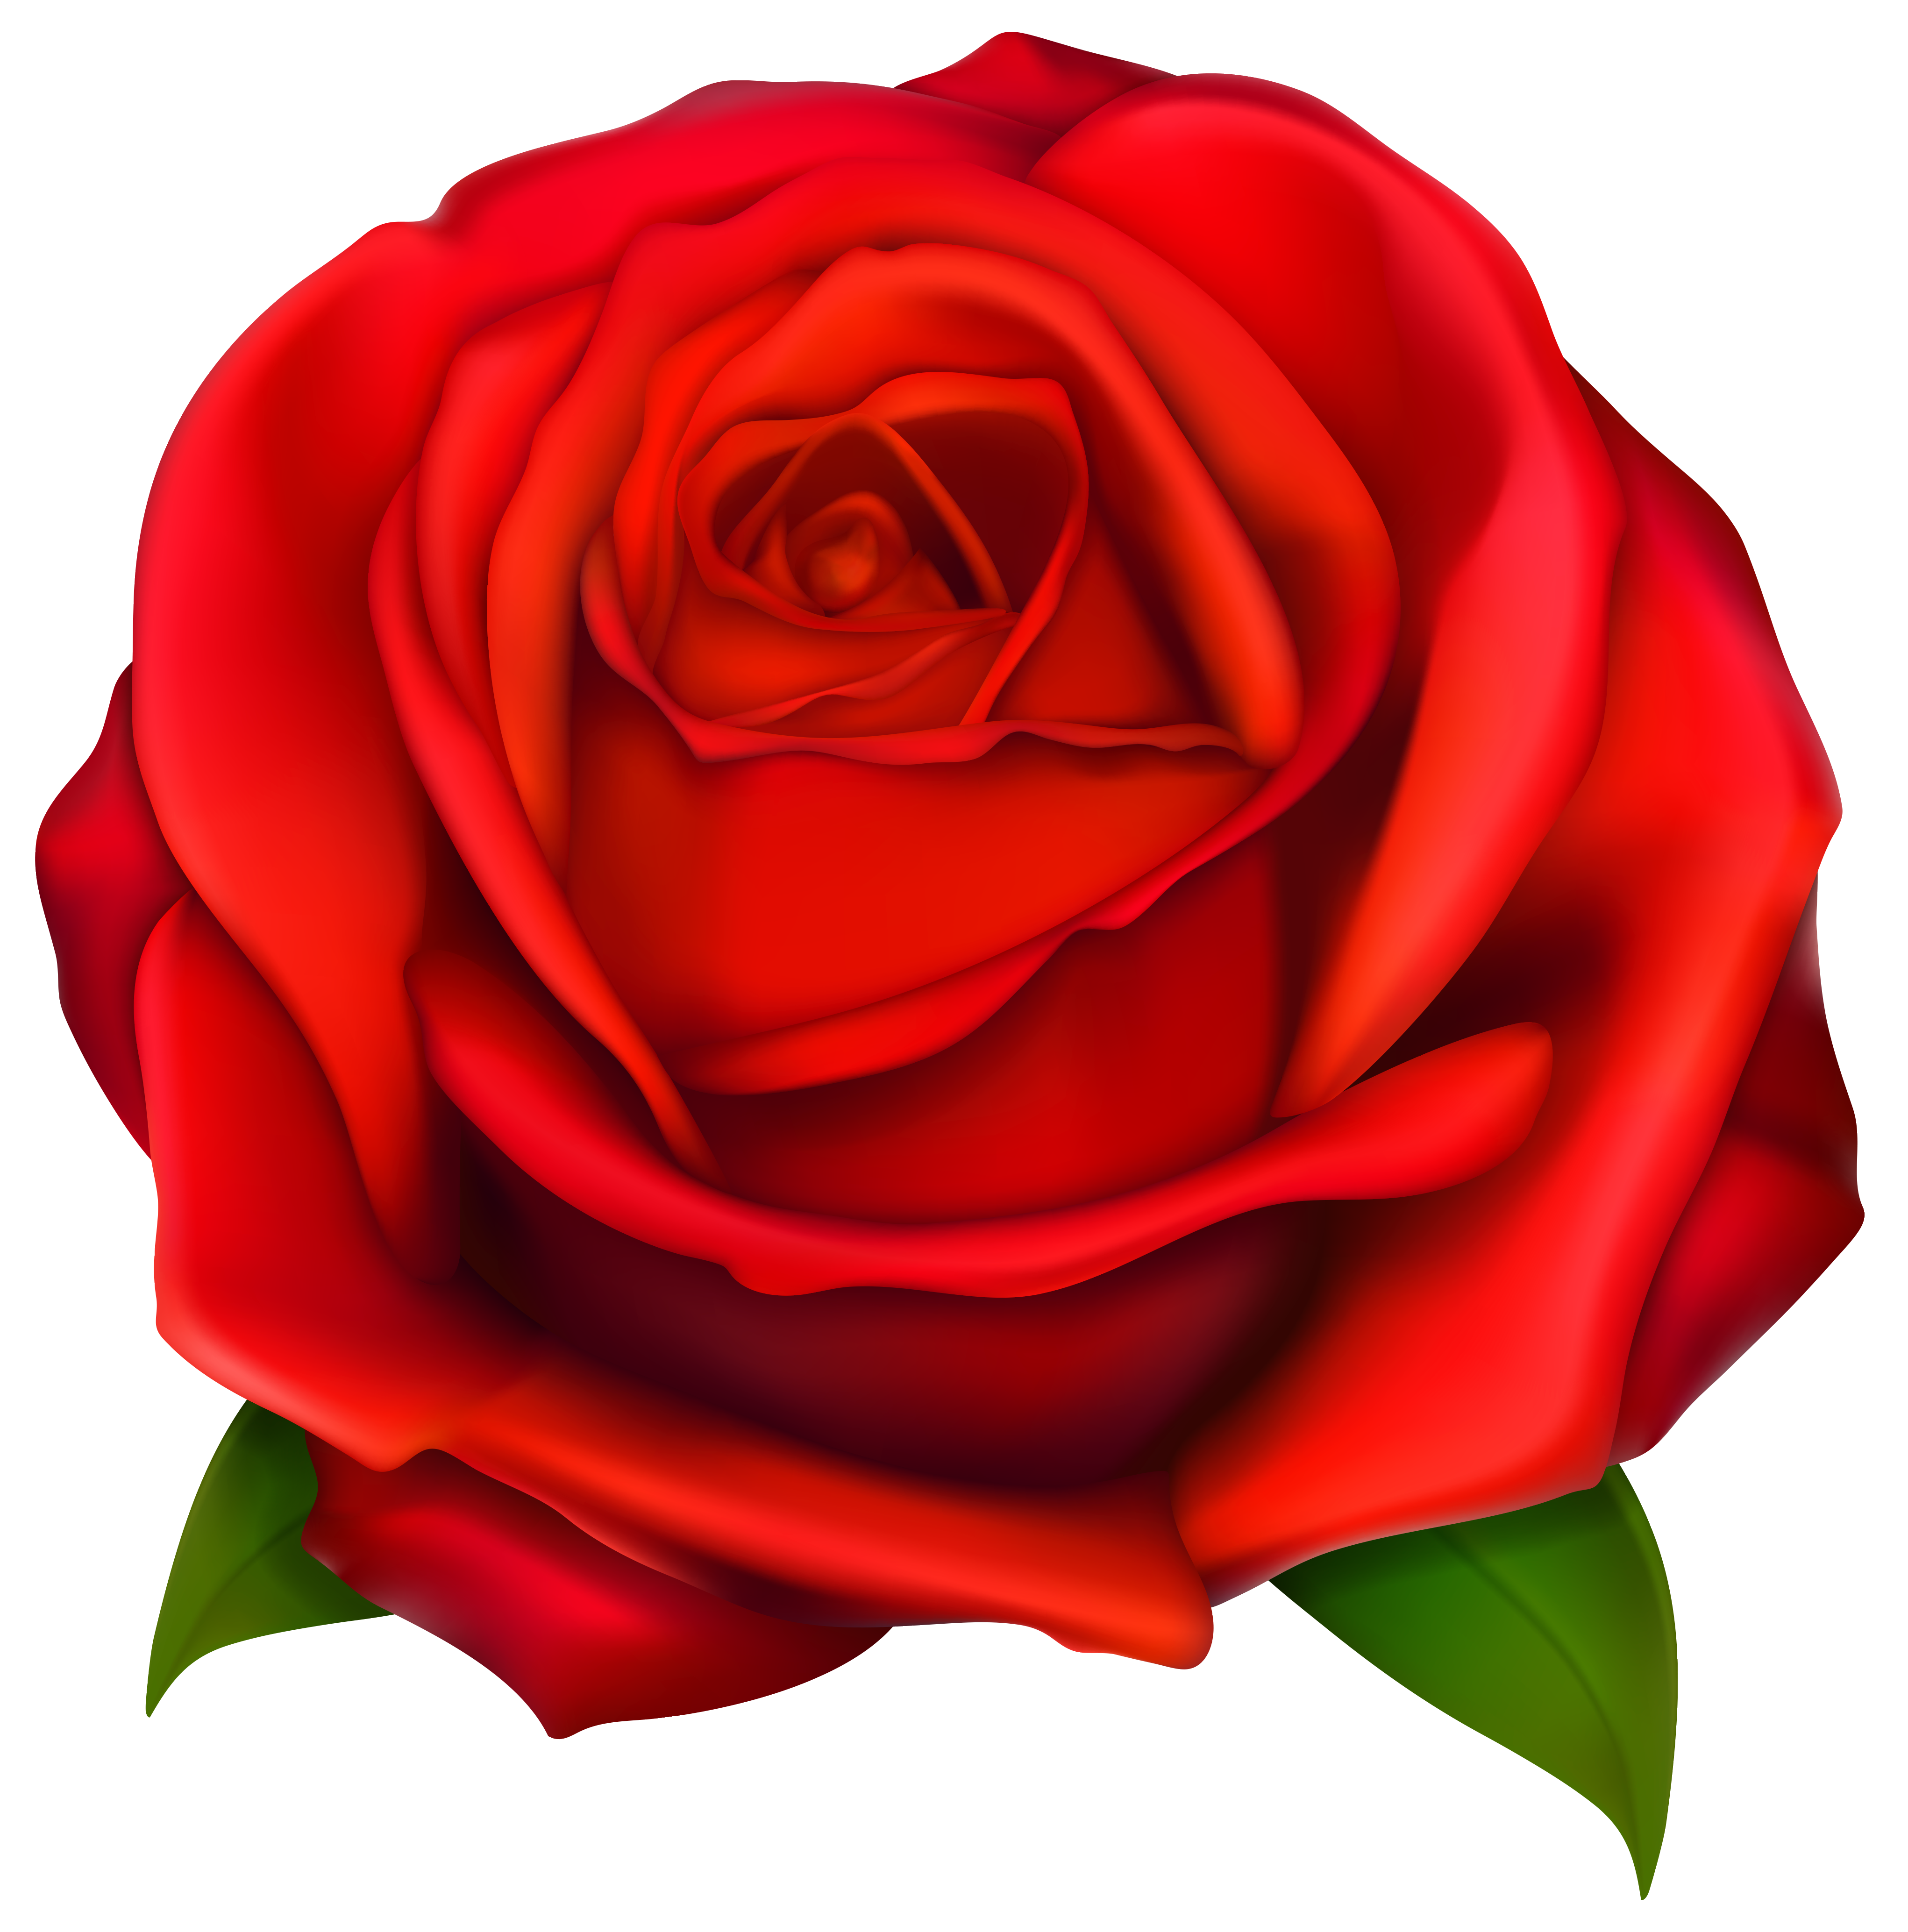 Image Of Clip Art Red Rose 2 Red Roses C-Image of clip art red rose 2 red roses clip art images free-10